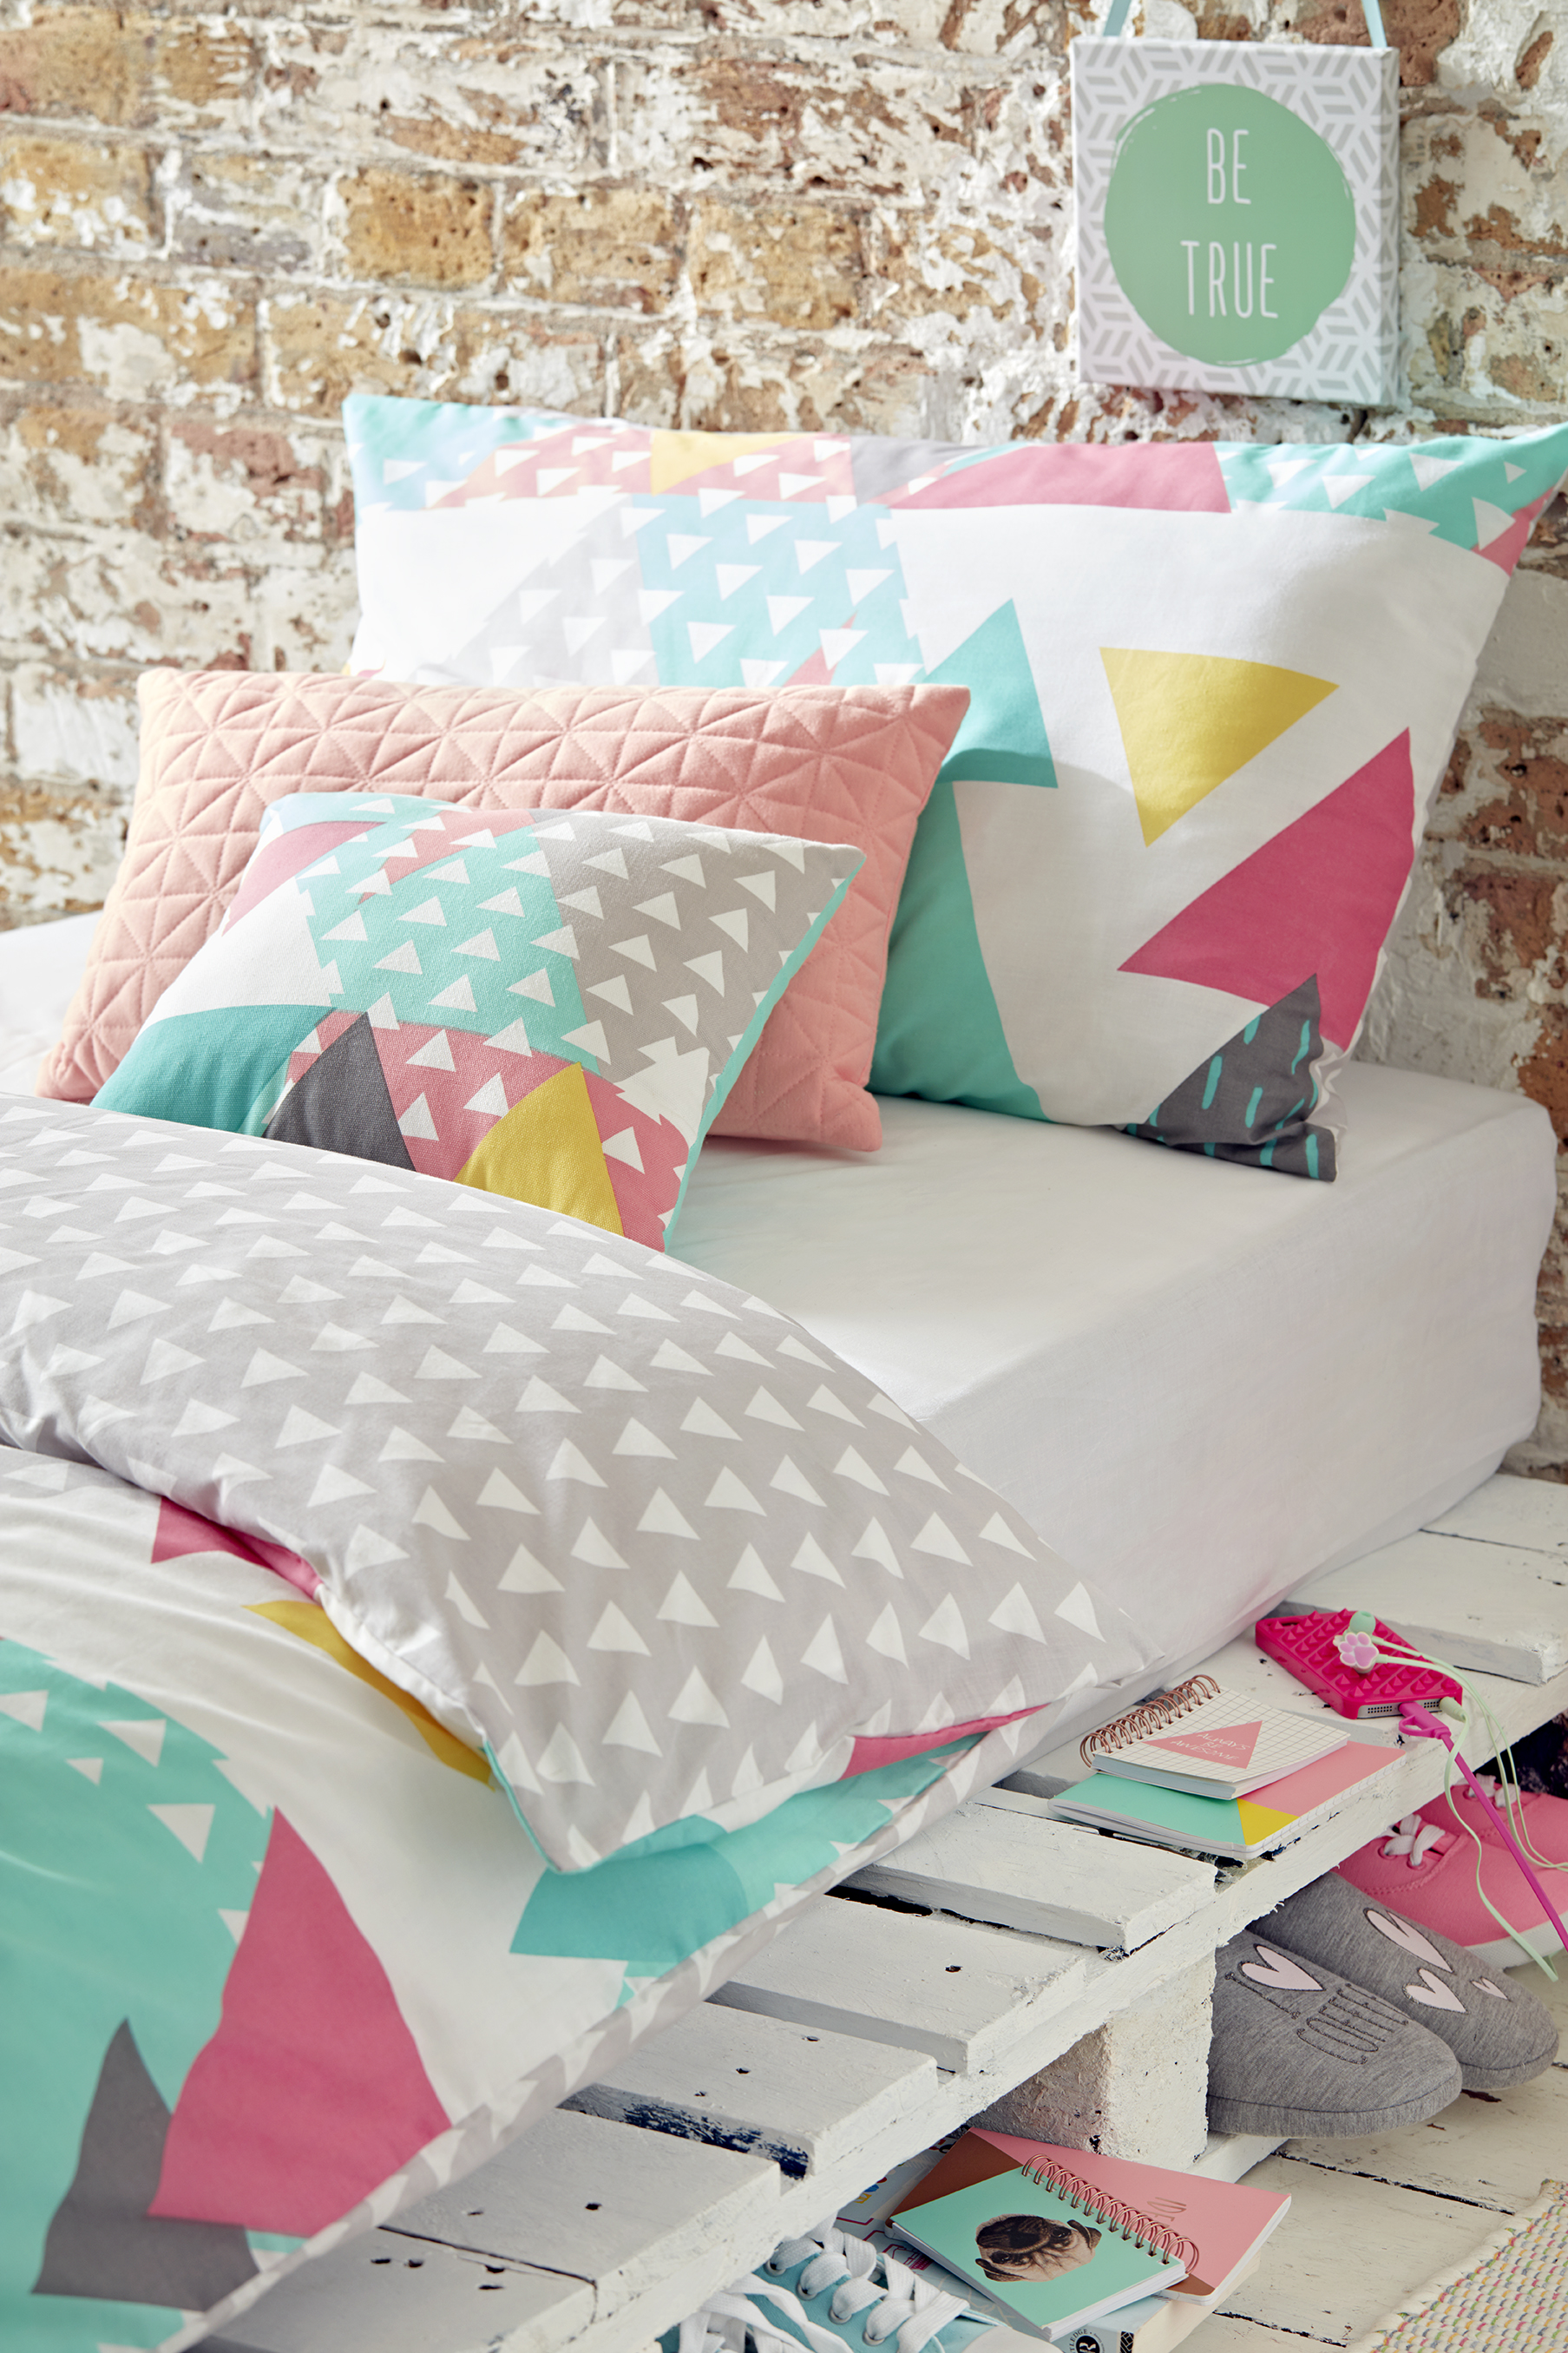 Scandi Cool Bedroom - Geo Print Duvet, €16 $20, Wall art, €2 $2.50 for set of three, other cushions from €6 $7